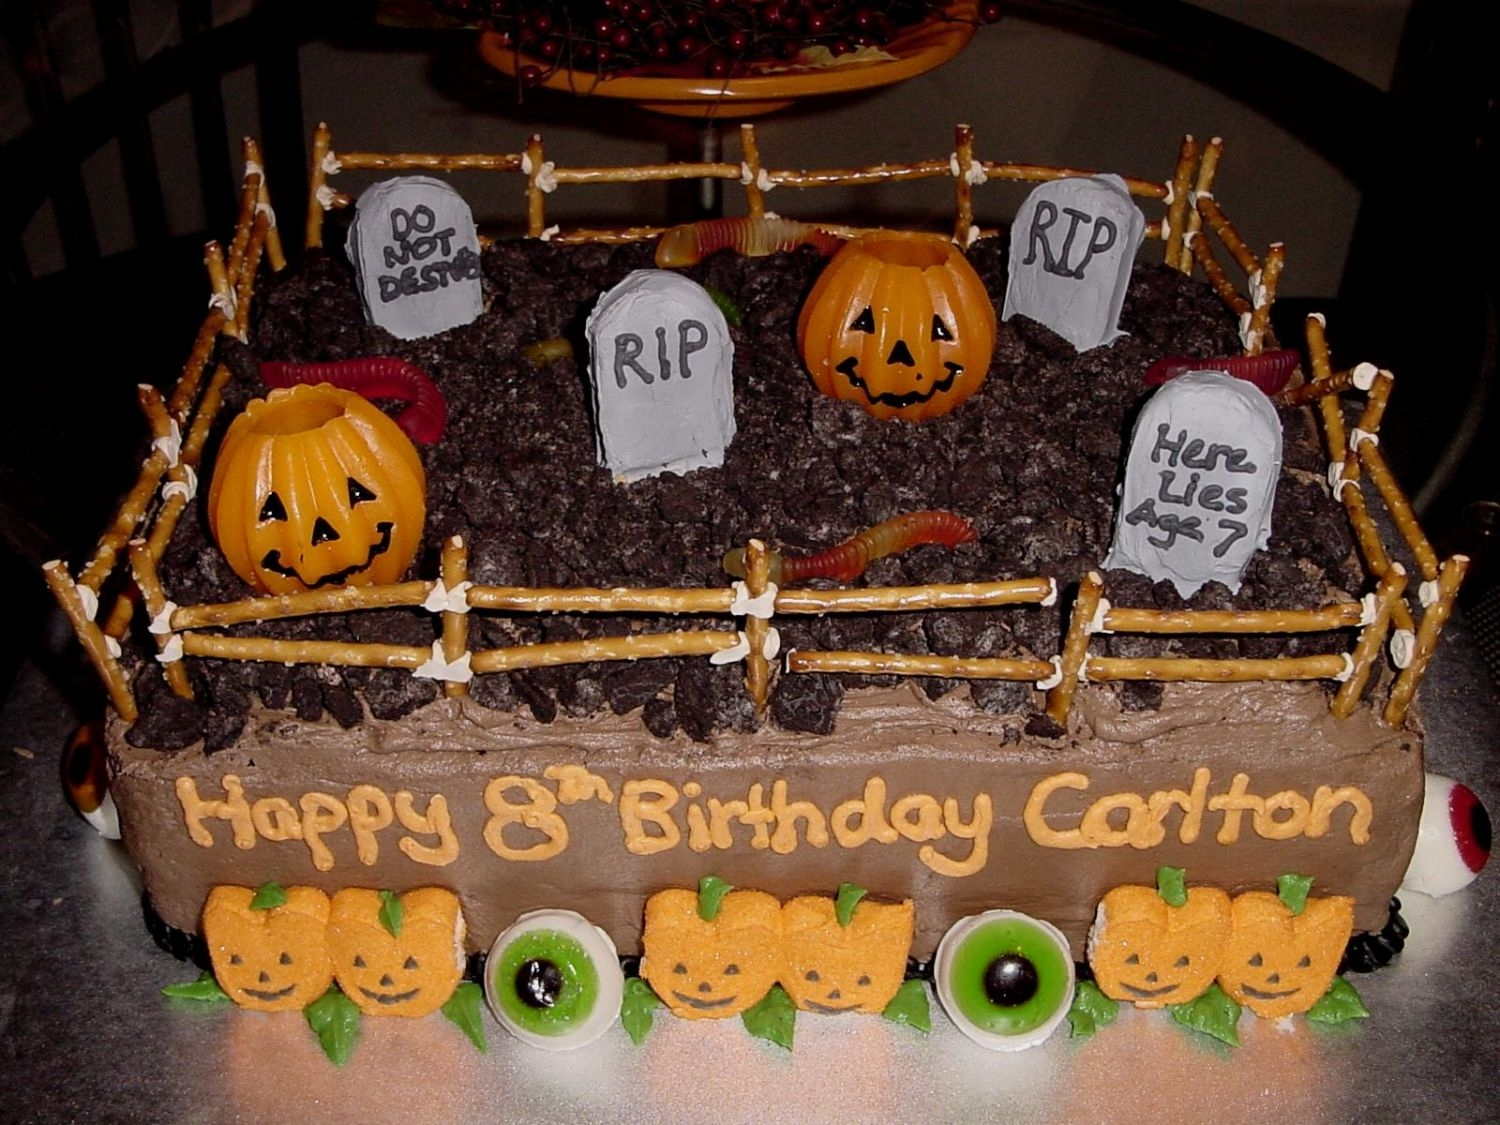 Halloween Graveyard/birthday Cake Fun and festive cake for a boy's halloween birthday!! He wanted to it be spooky!!